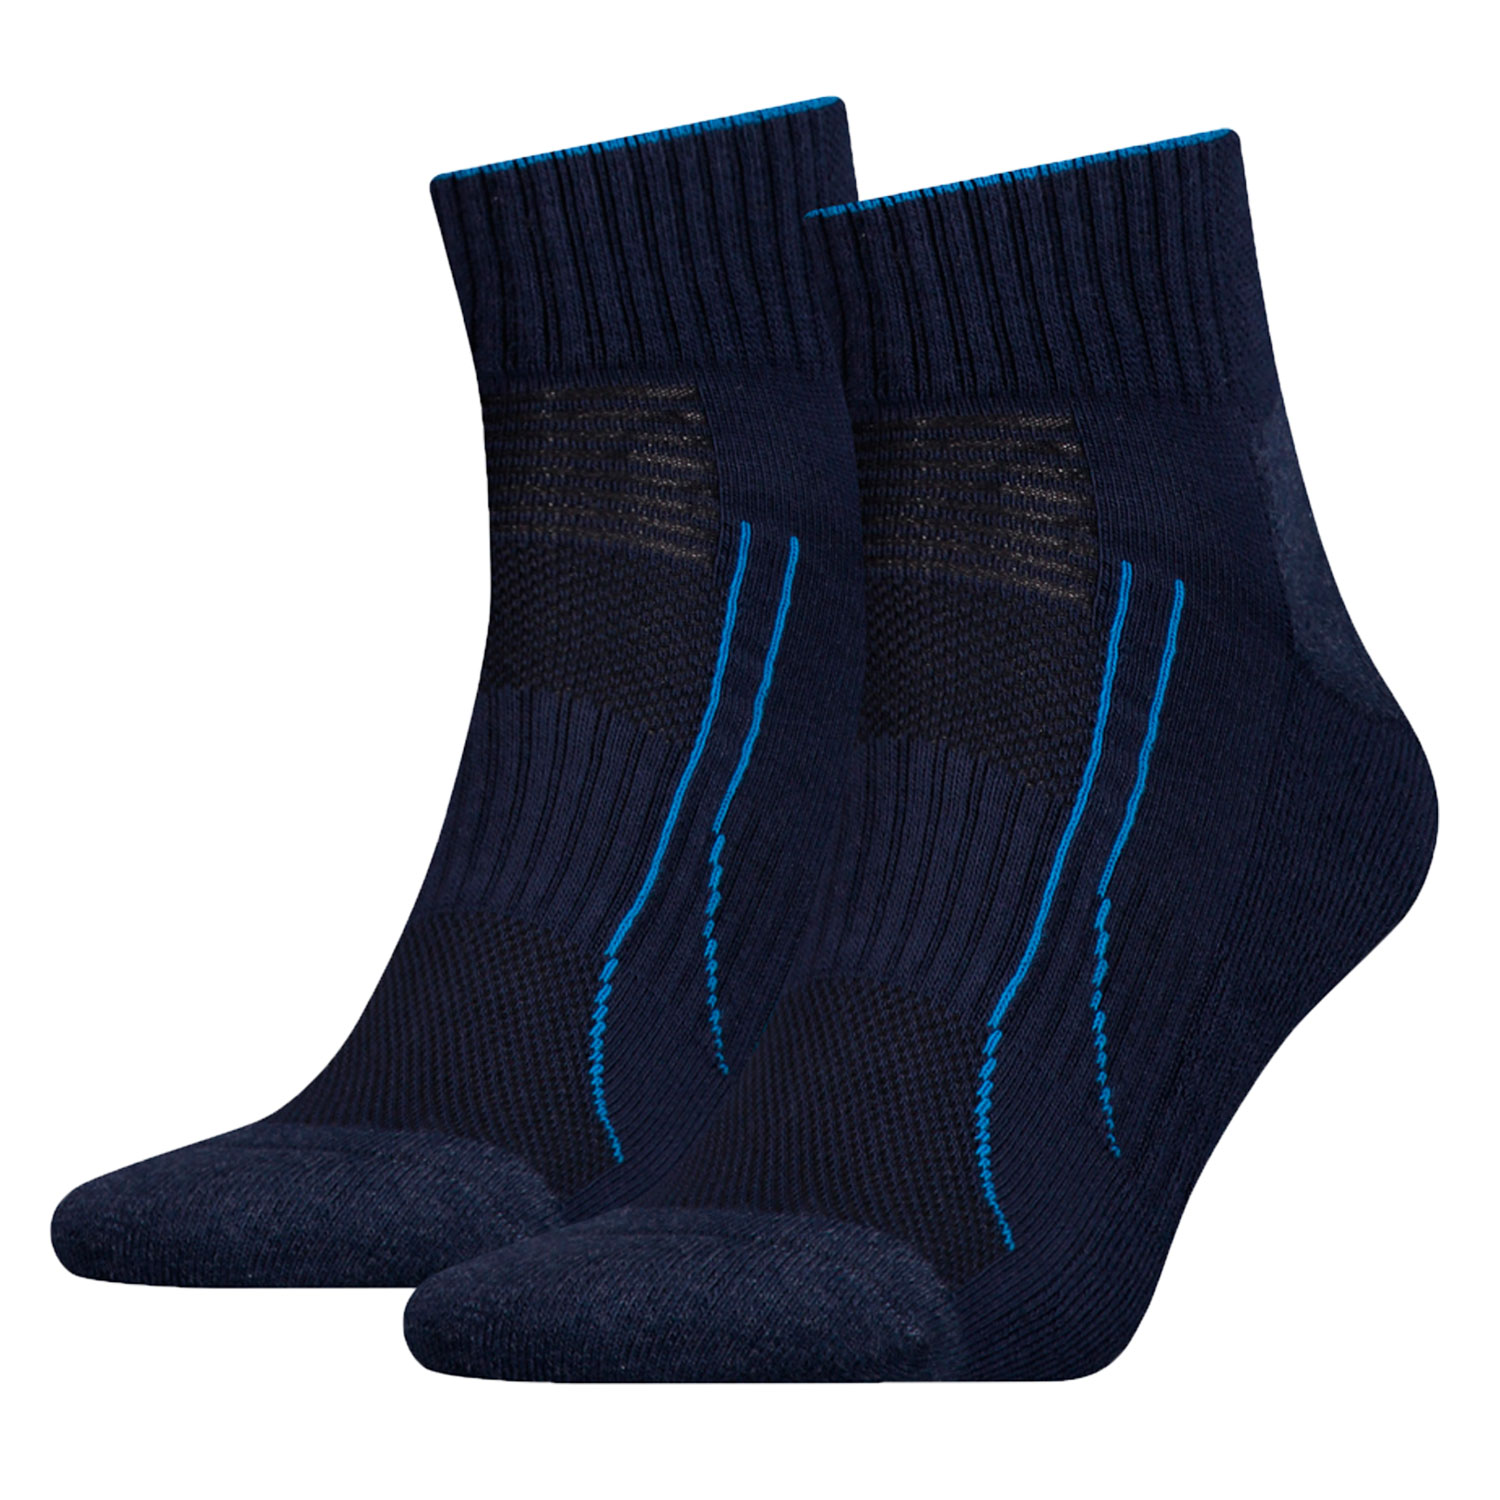 Puma Performance Train Quarter 10 Paar Kurzsocken Sportsocken Allround Sports – Bild 3